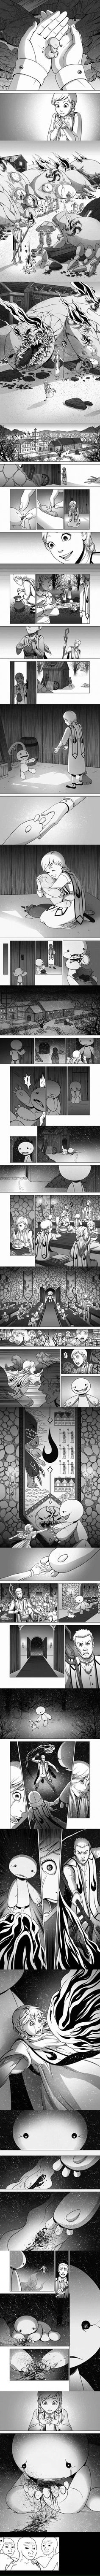 F**king ninja cutting onions!!! Name of the comic: Mother's Hand by Lydia